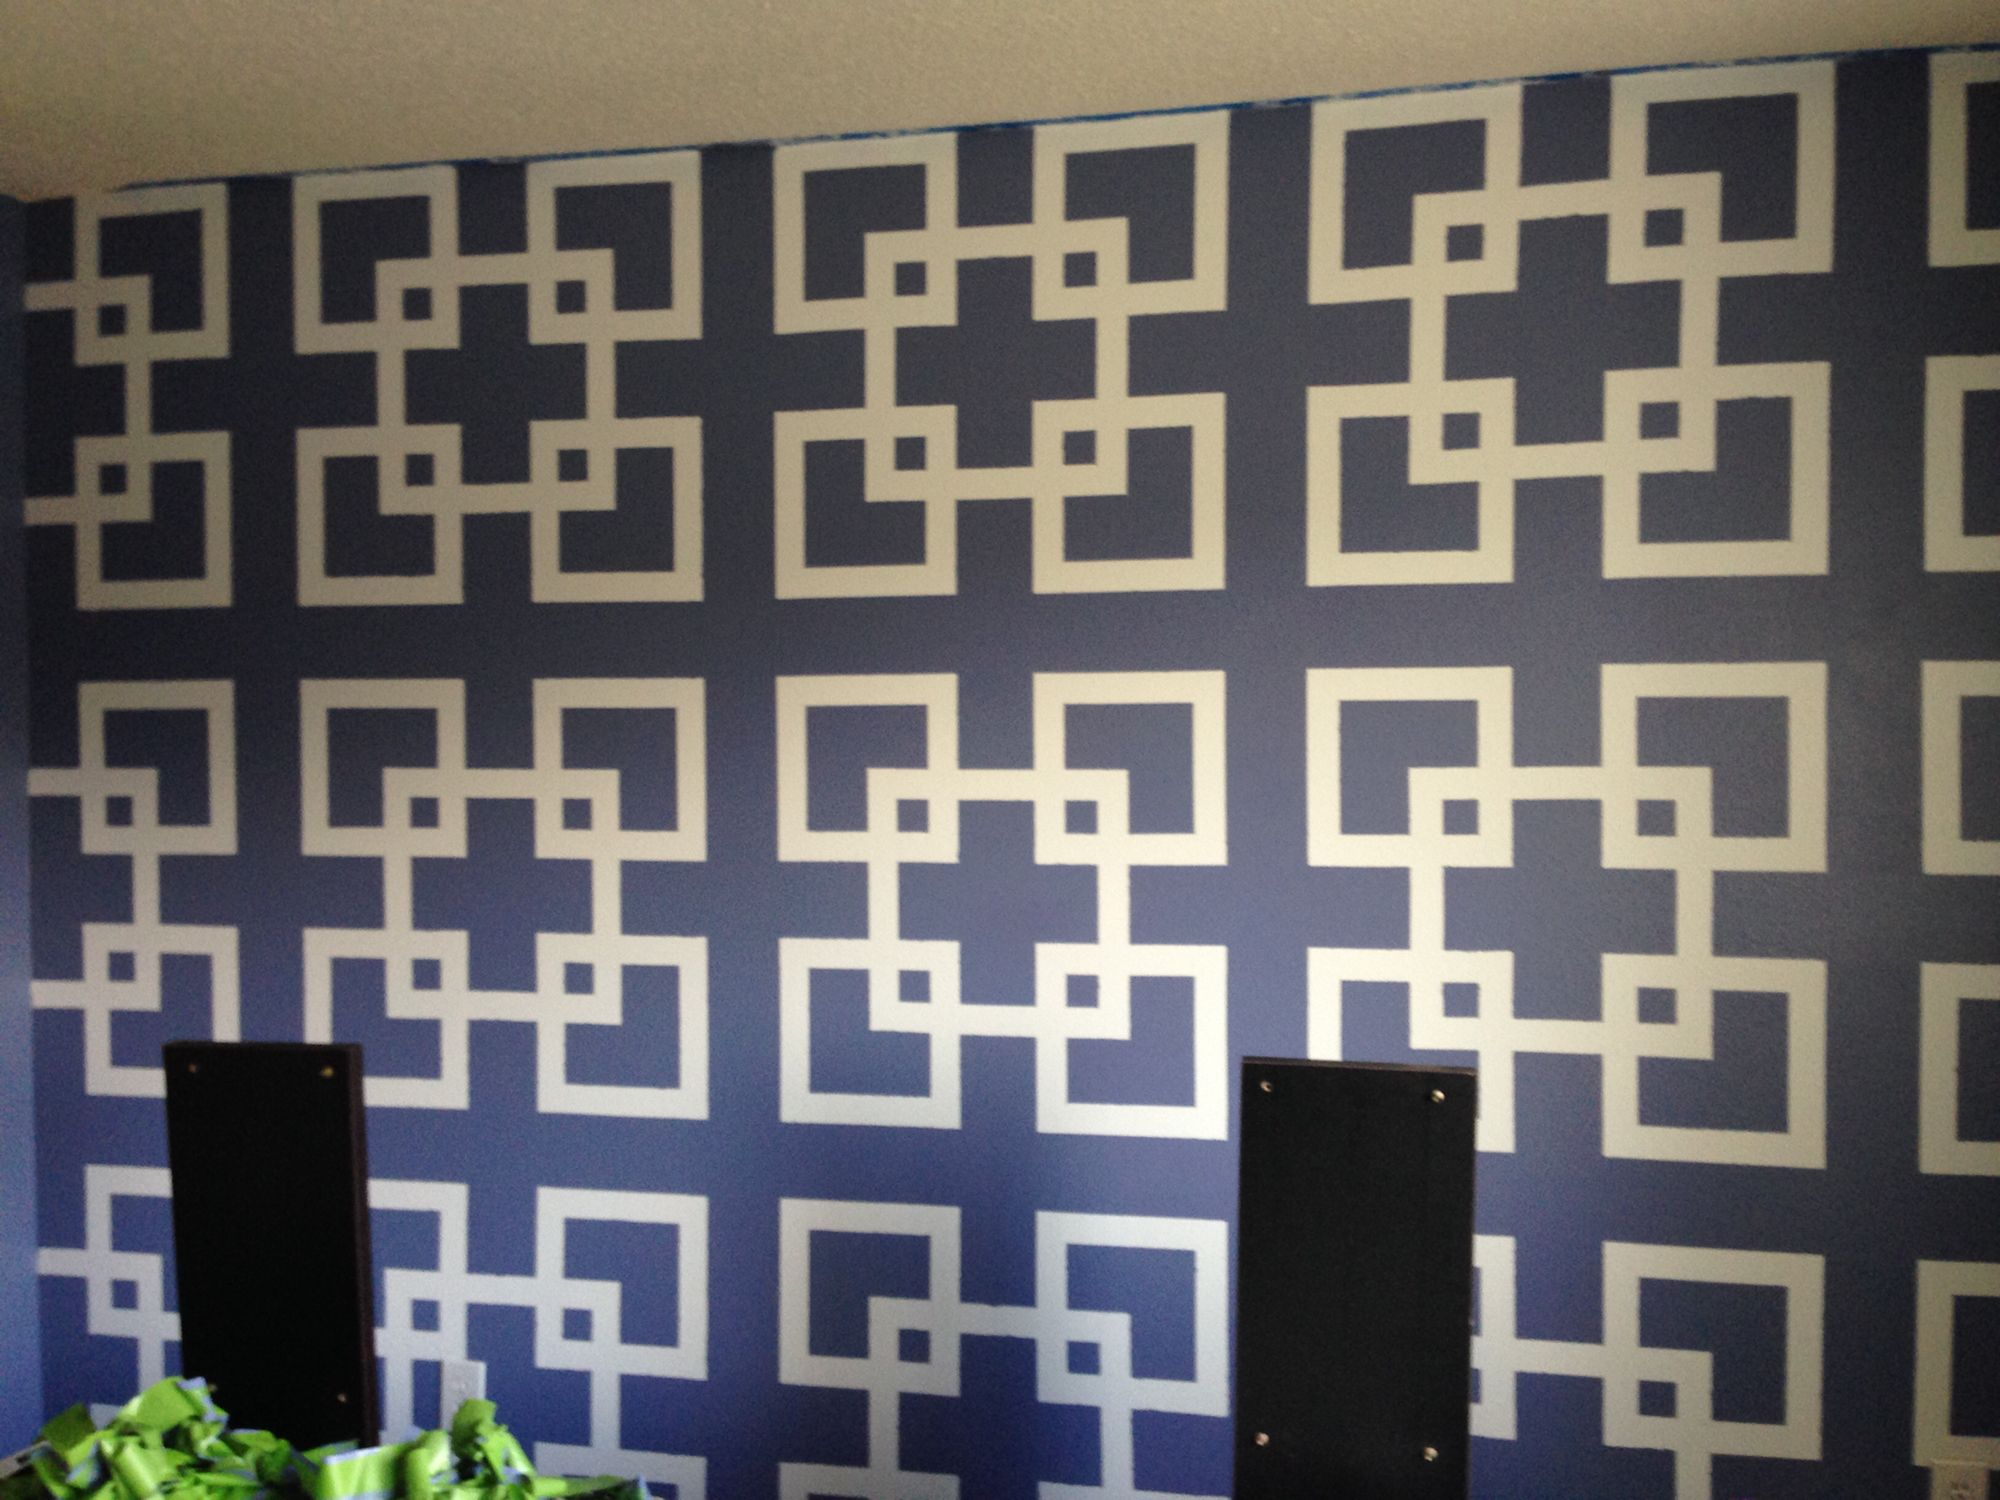 Cousin's #bedroom #wall #painted #pattern